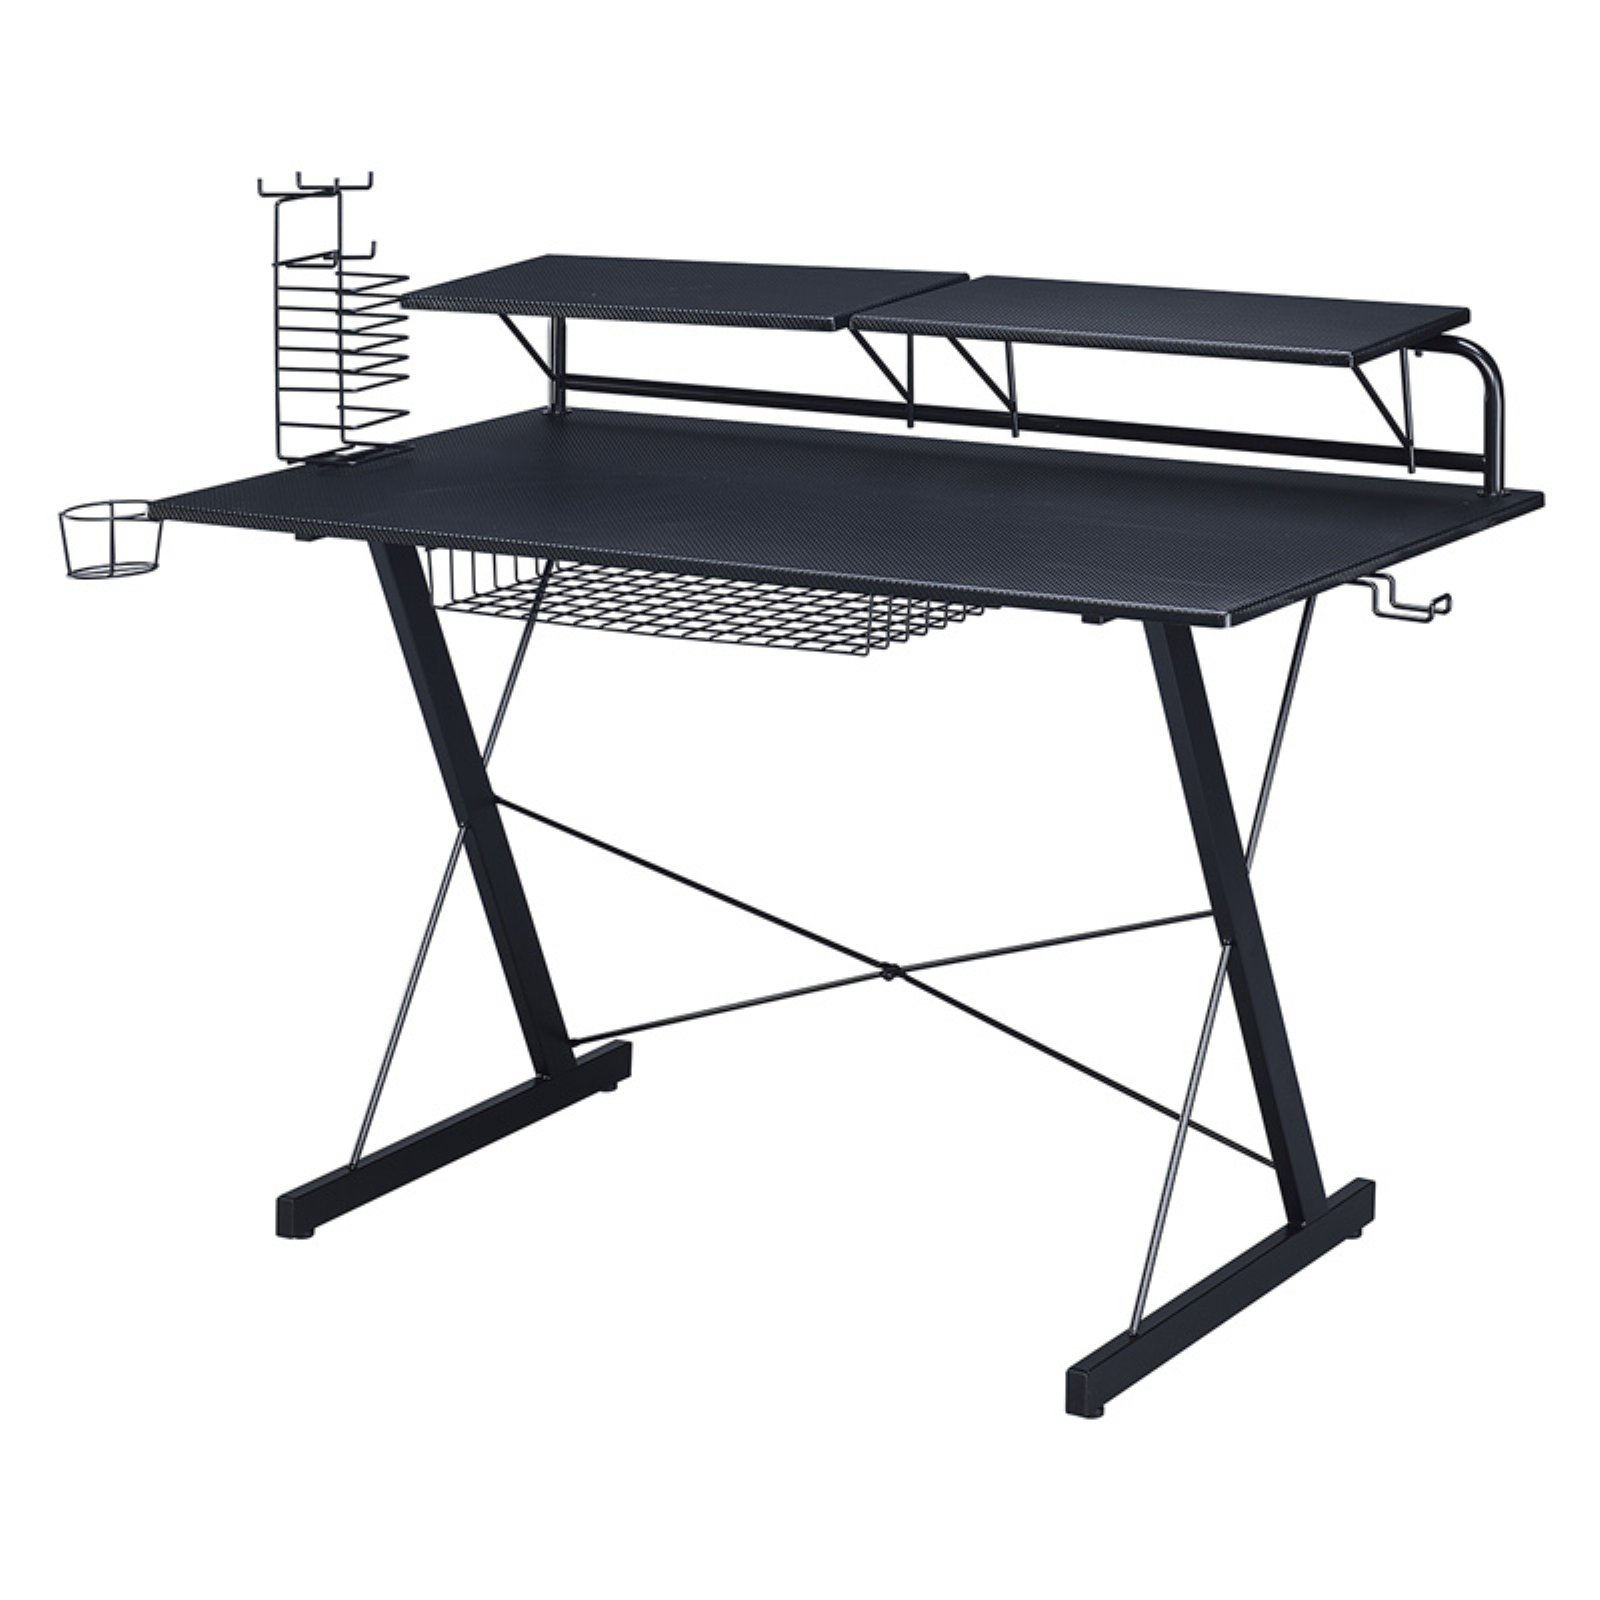 Techni Sport Black Carbon Computer Gaming Desk with Adjustable, Configurable Shelves